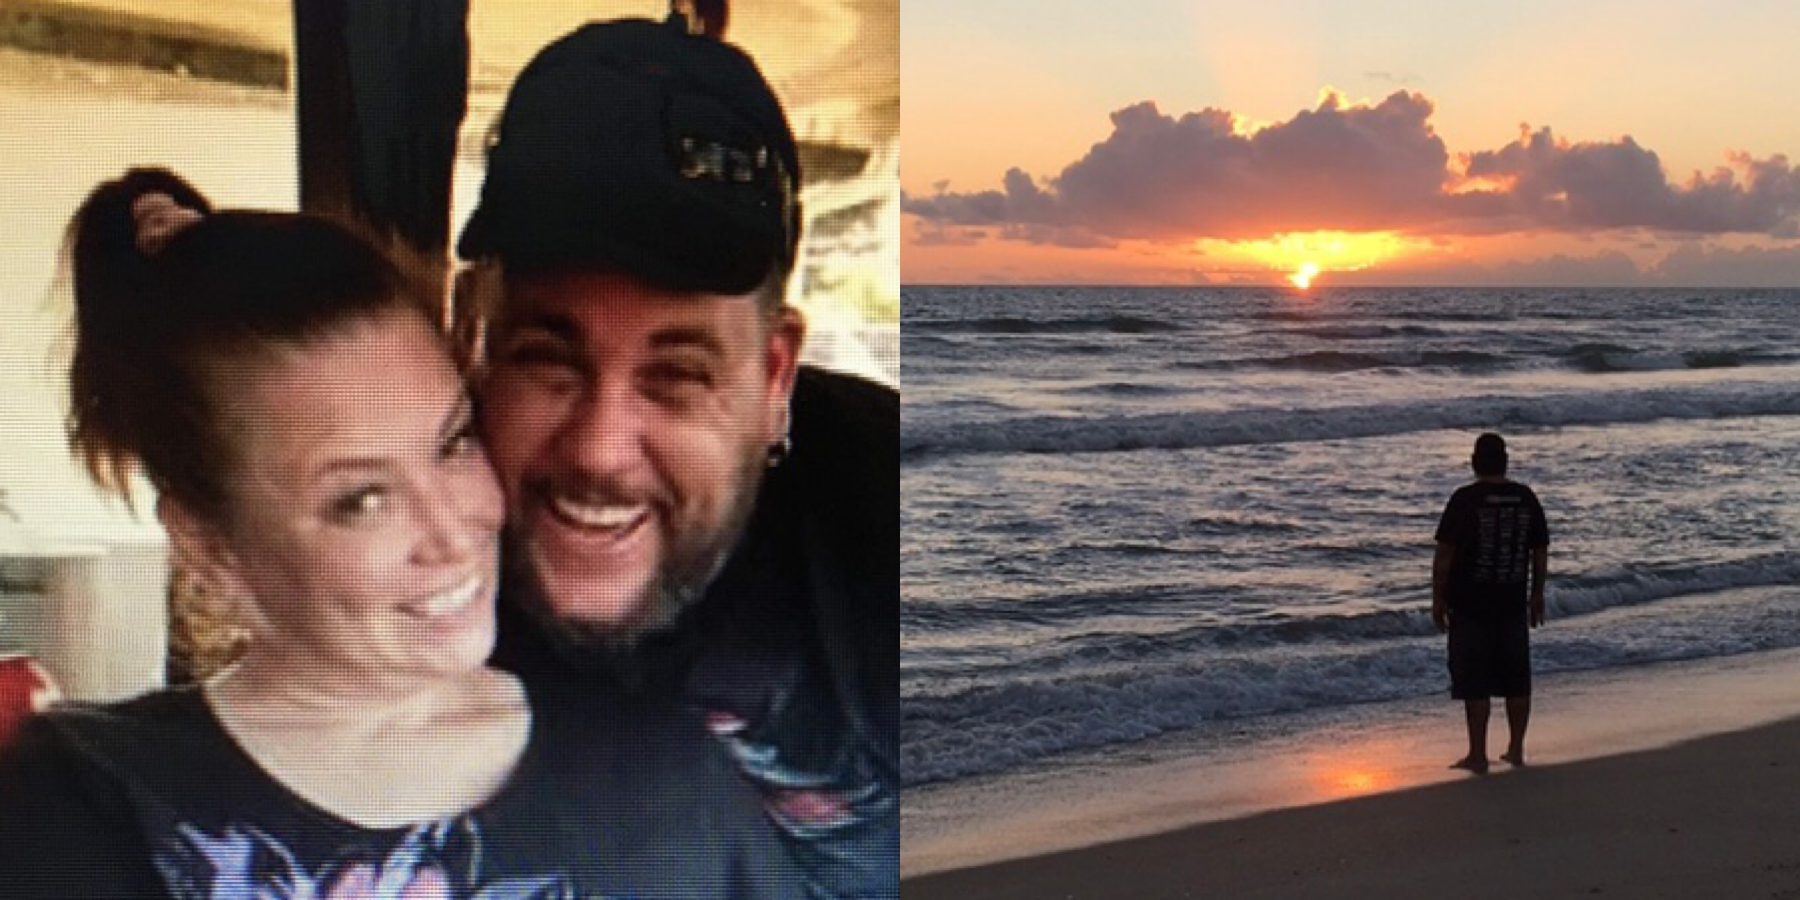 Our first pic and my last taken of you dear friend!  I love that sunrise picture and the fun we had that day.  My heart aches with disbelief that you are gone. I will always cherish our memories and pray for God's peace and strength over your family as I you watch over them. I love  and miss you...sleep in peace.